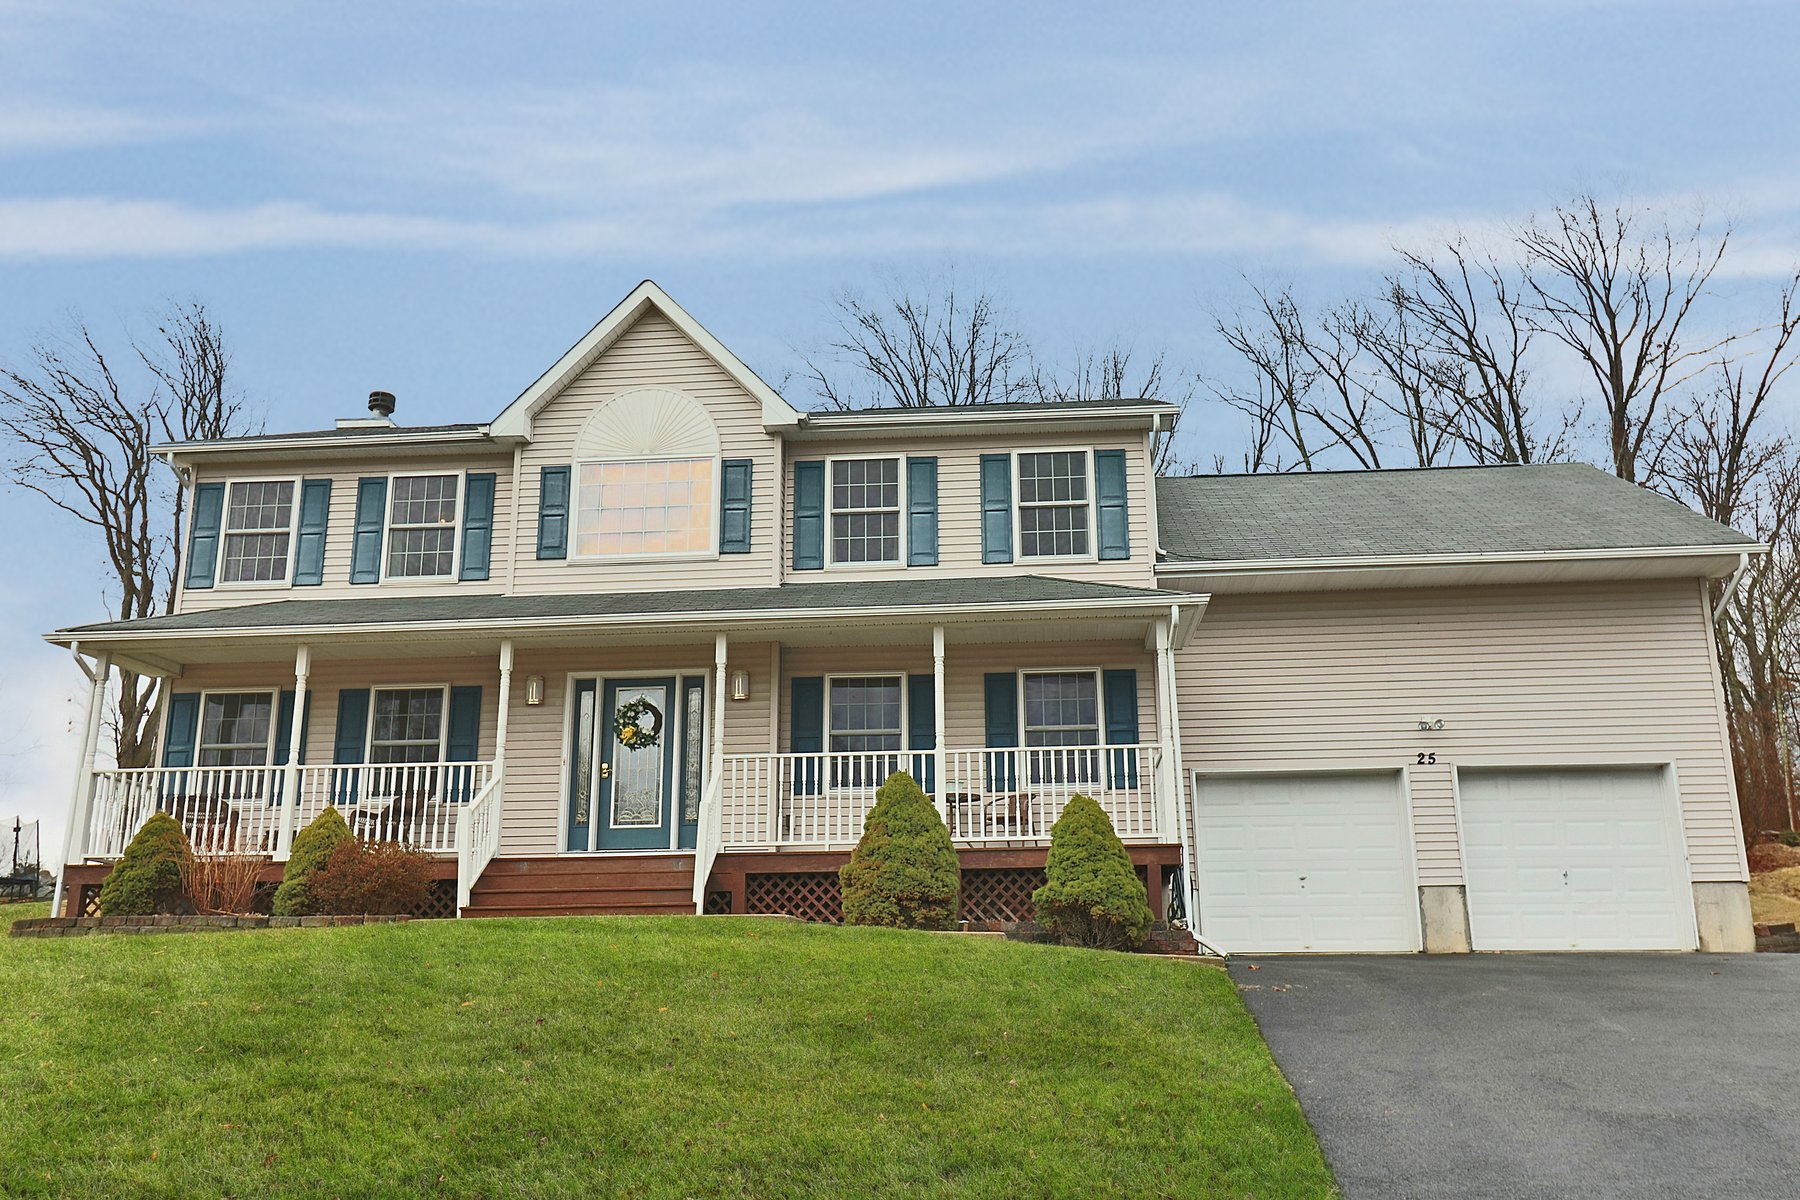 Single Family Home for Sale at Charming Colonial - Sale Pending 25 Old Hemlock Drive New Windsor, New York 12553 United States